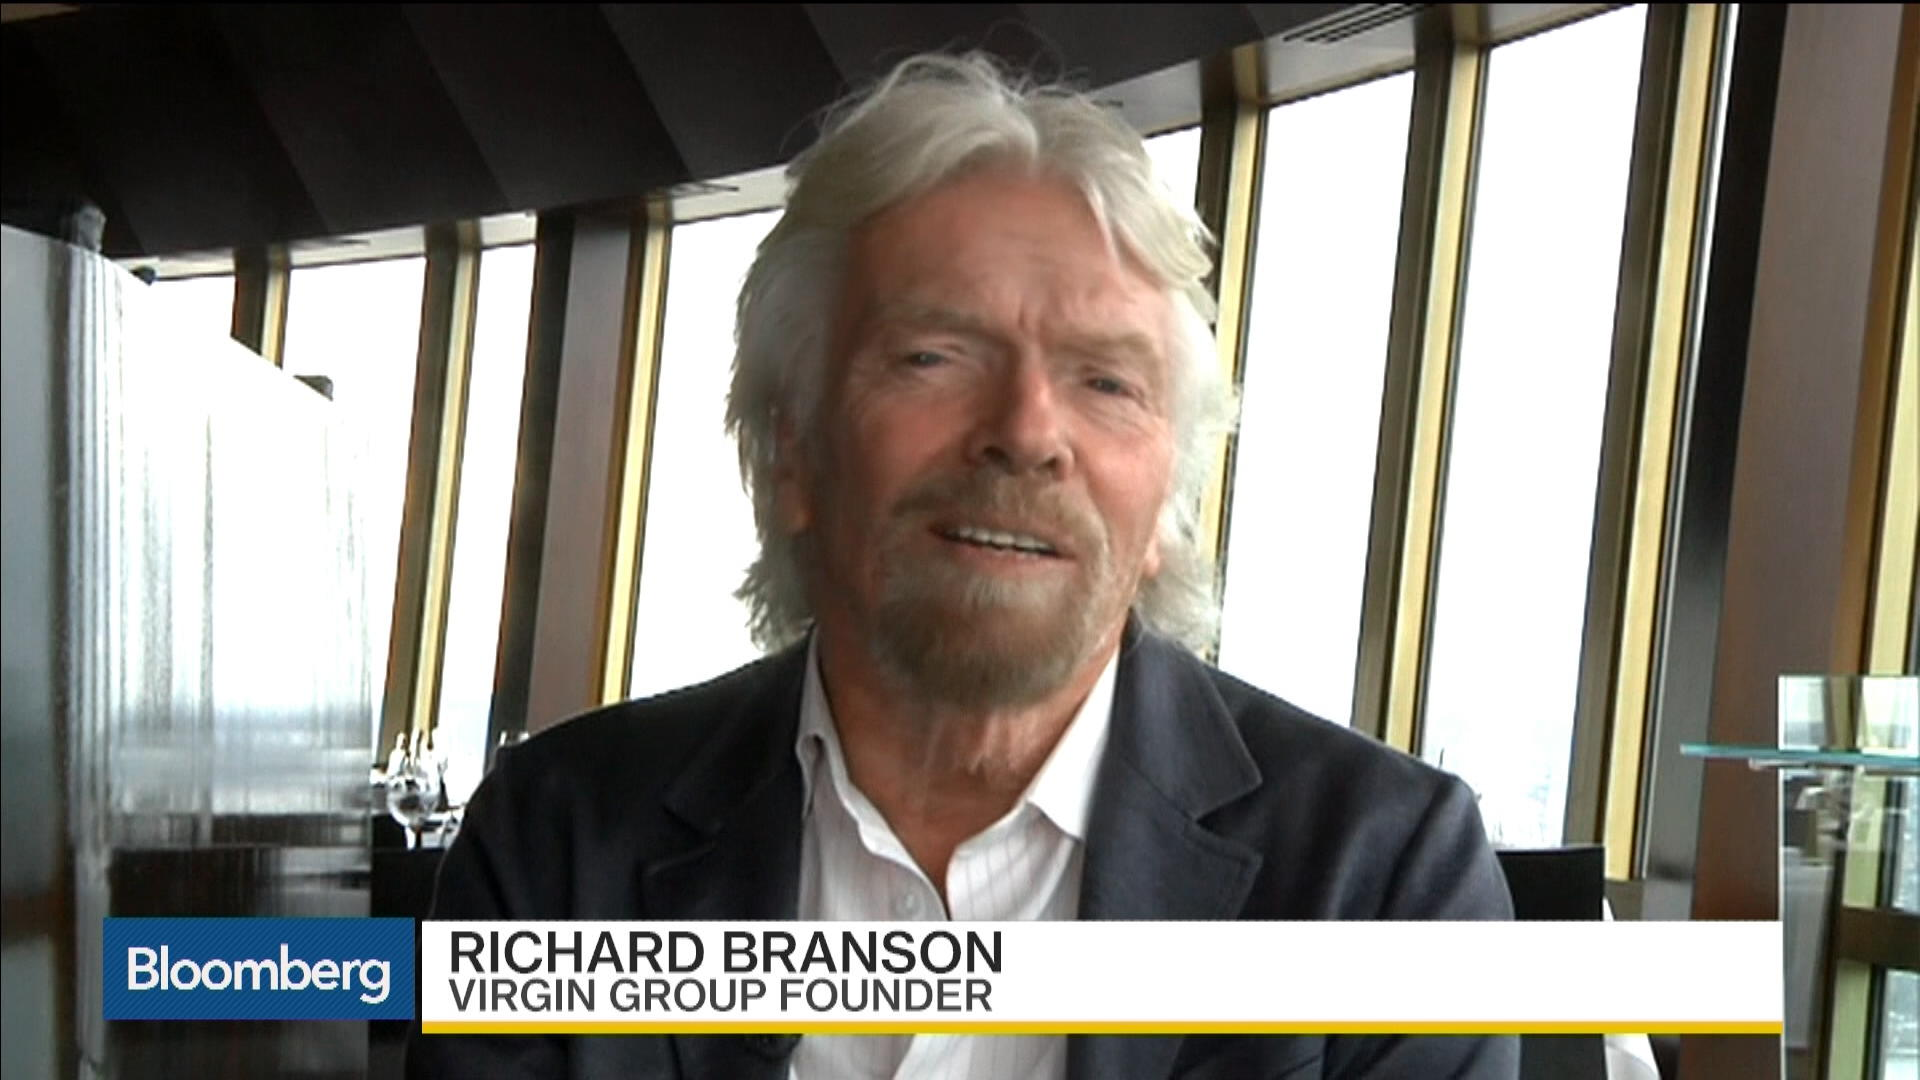 richard branson on the importance of Virgin trains founder richard branson has been mocked by passengers after he said on twitter his pet hate was people turning up late the billionaire entrepreneur posted a message saying how important punctuality is alongside a picture of him running to a meeting to avoid being late.